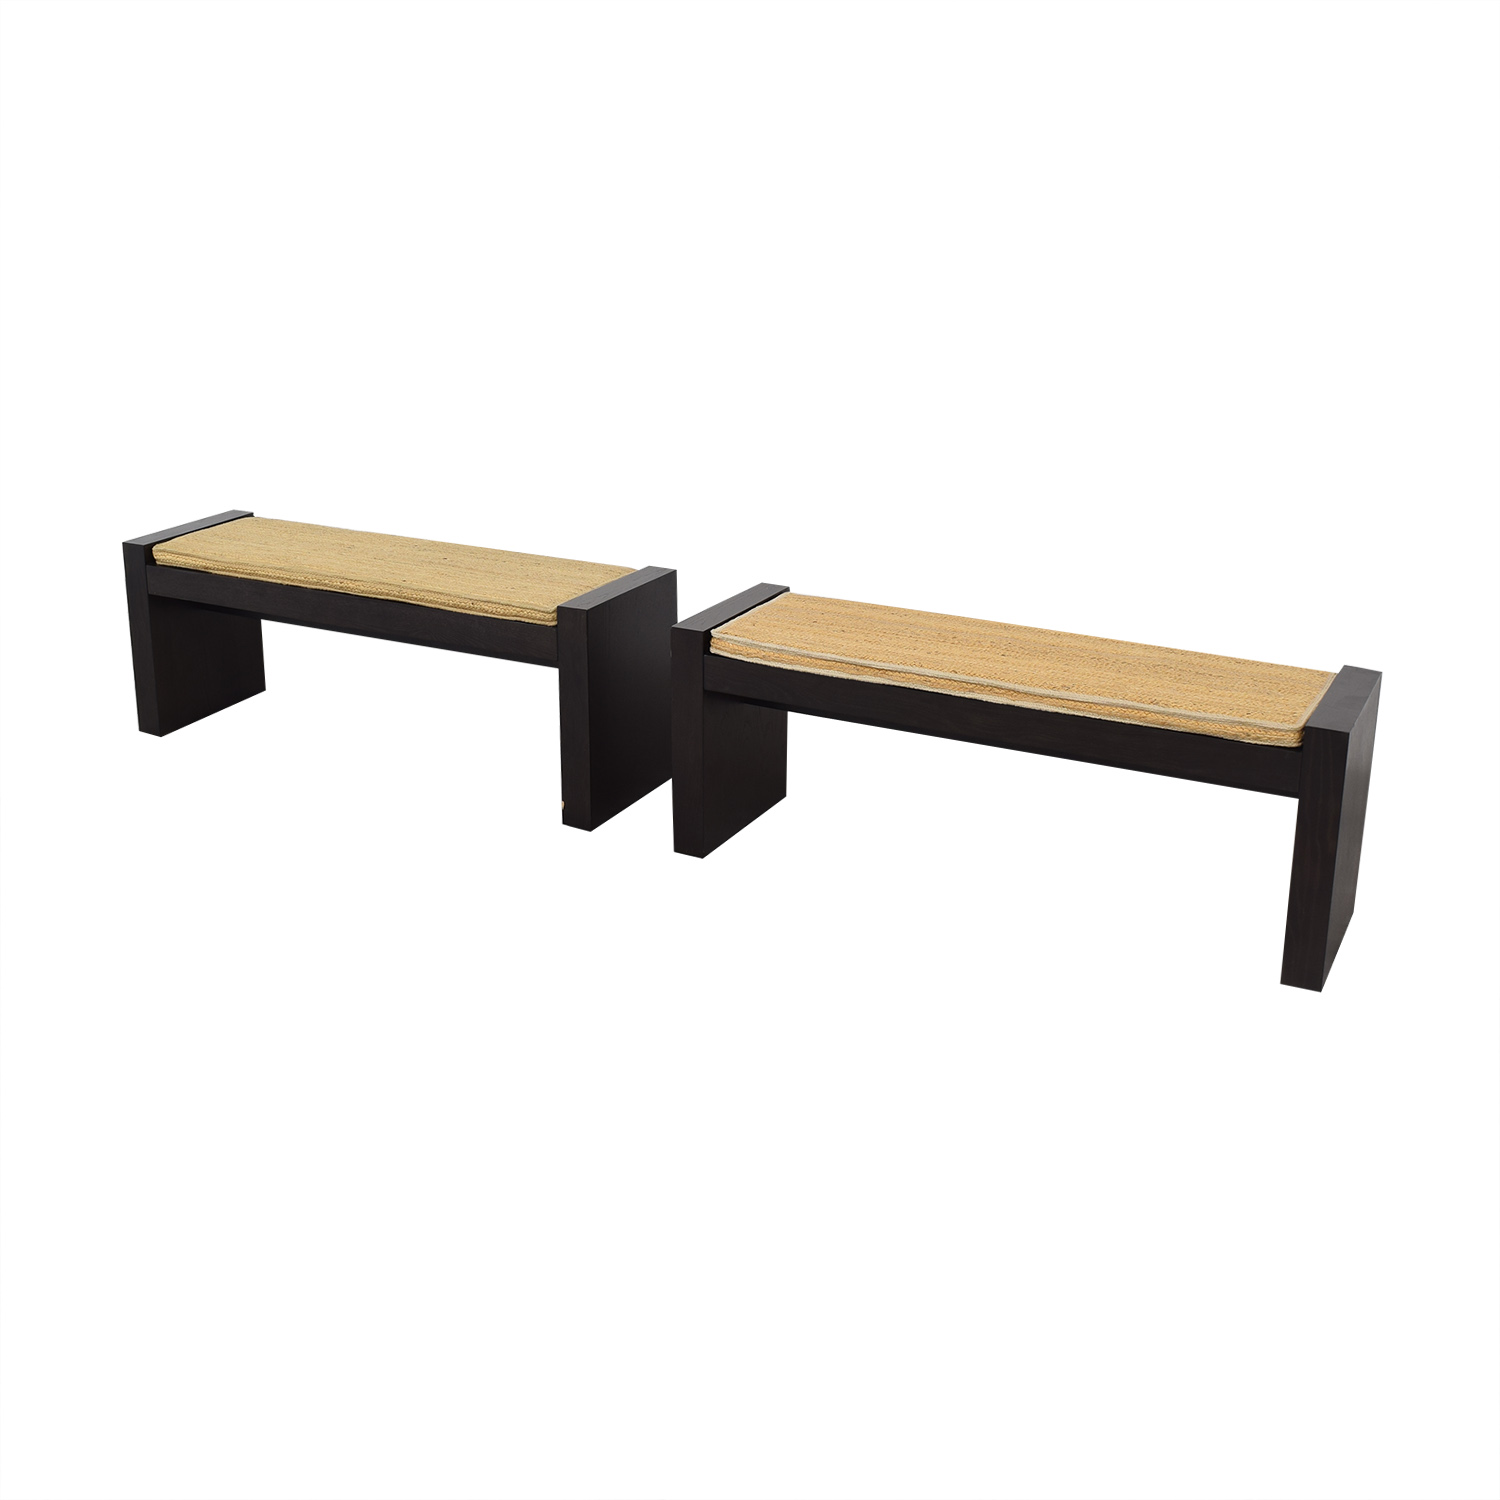 West Elm Terra Dining Benches with Woven Cushions / Chairs